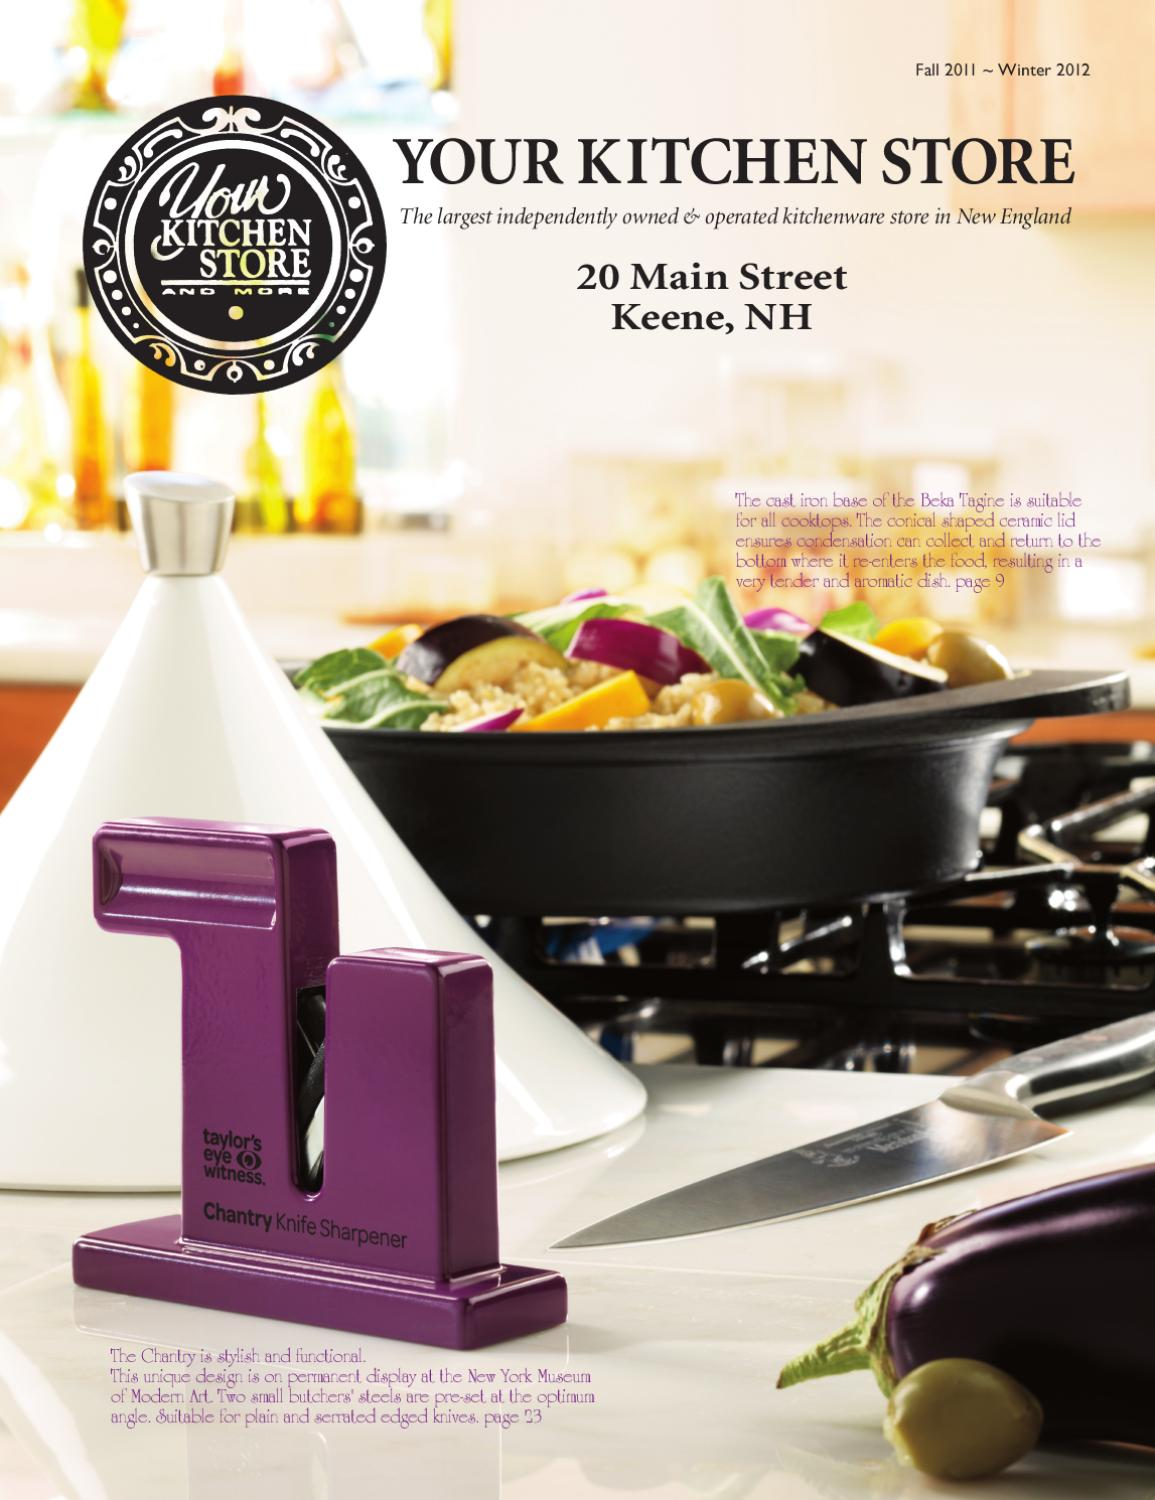 Cucinapro Multi-baker With Interchangeable Plates Your Kitchen Store Winter Catalog Linked By Footsteps Marketing